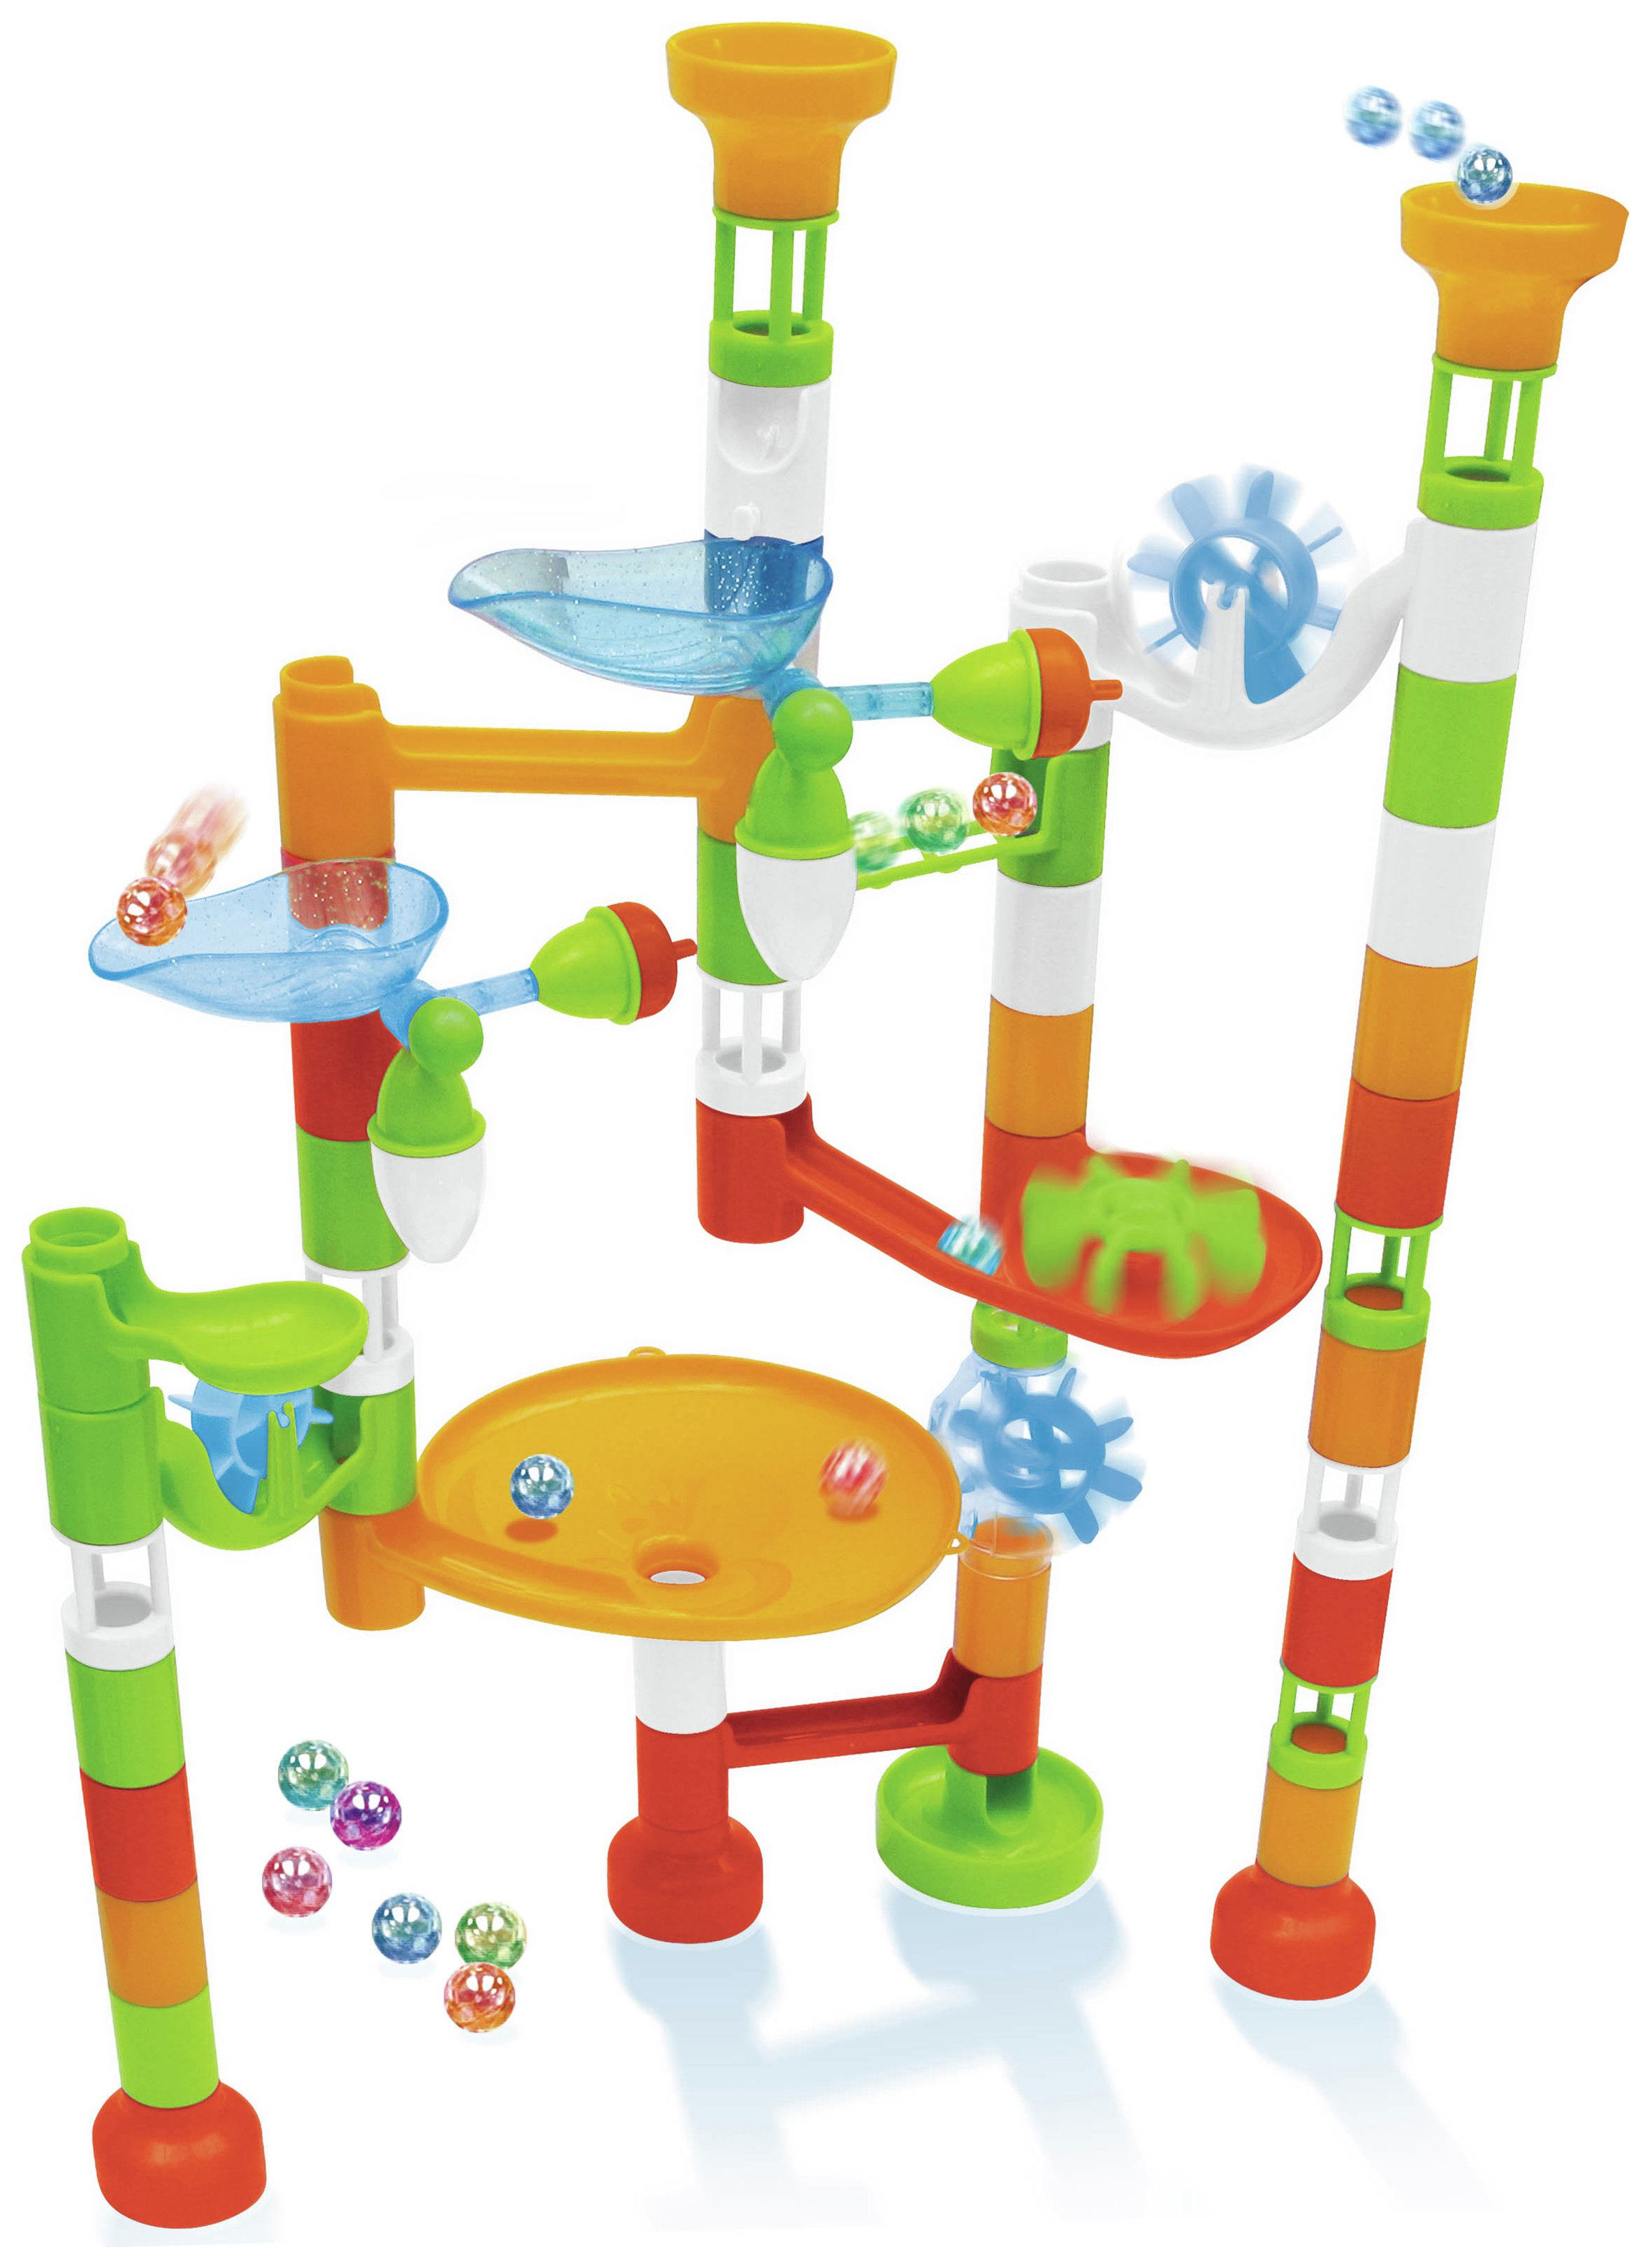 Image of Buki Marble Run - Game.